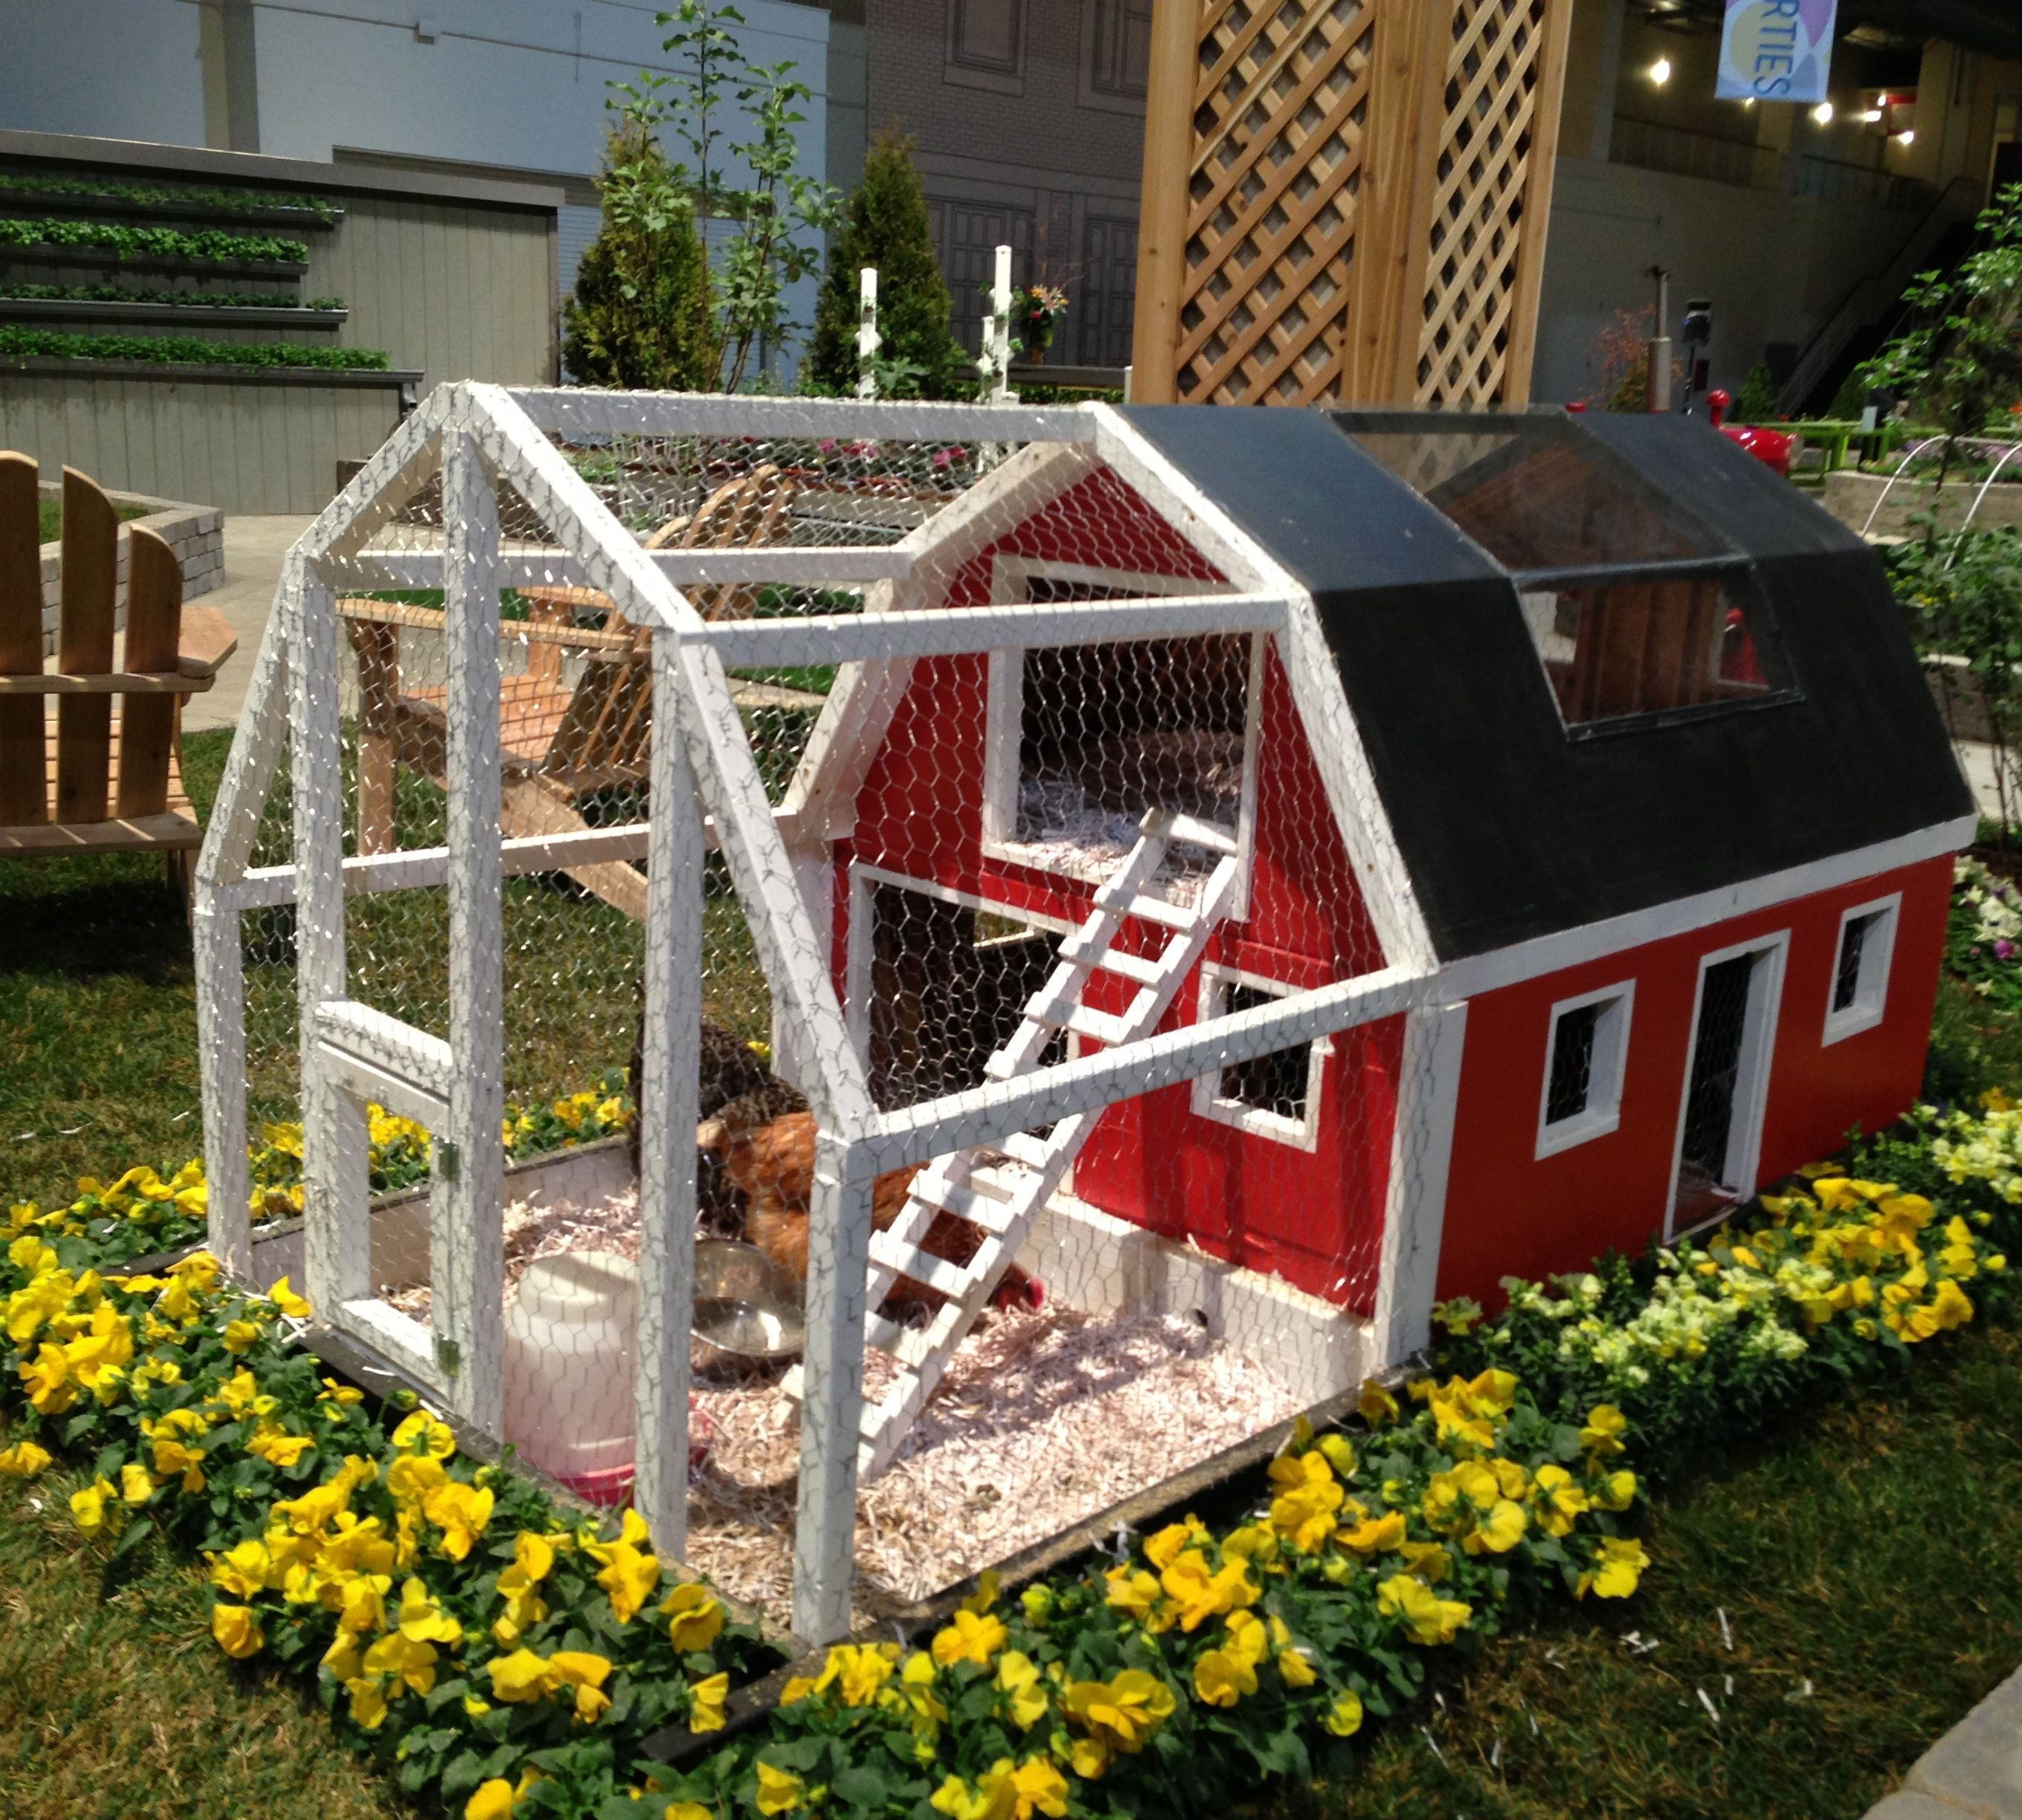 A Bright Red Barn-style Chicken Coop